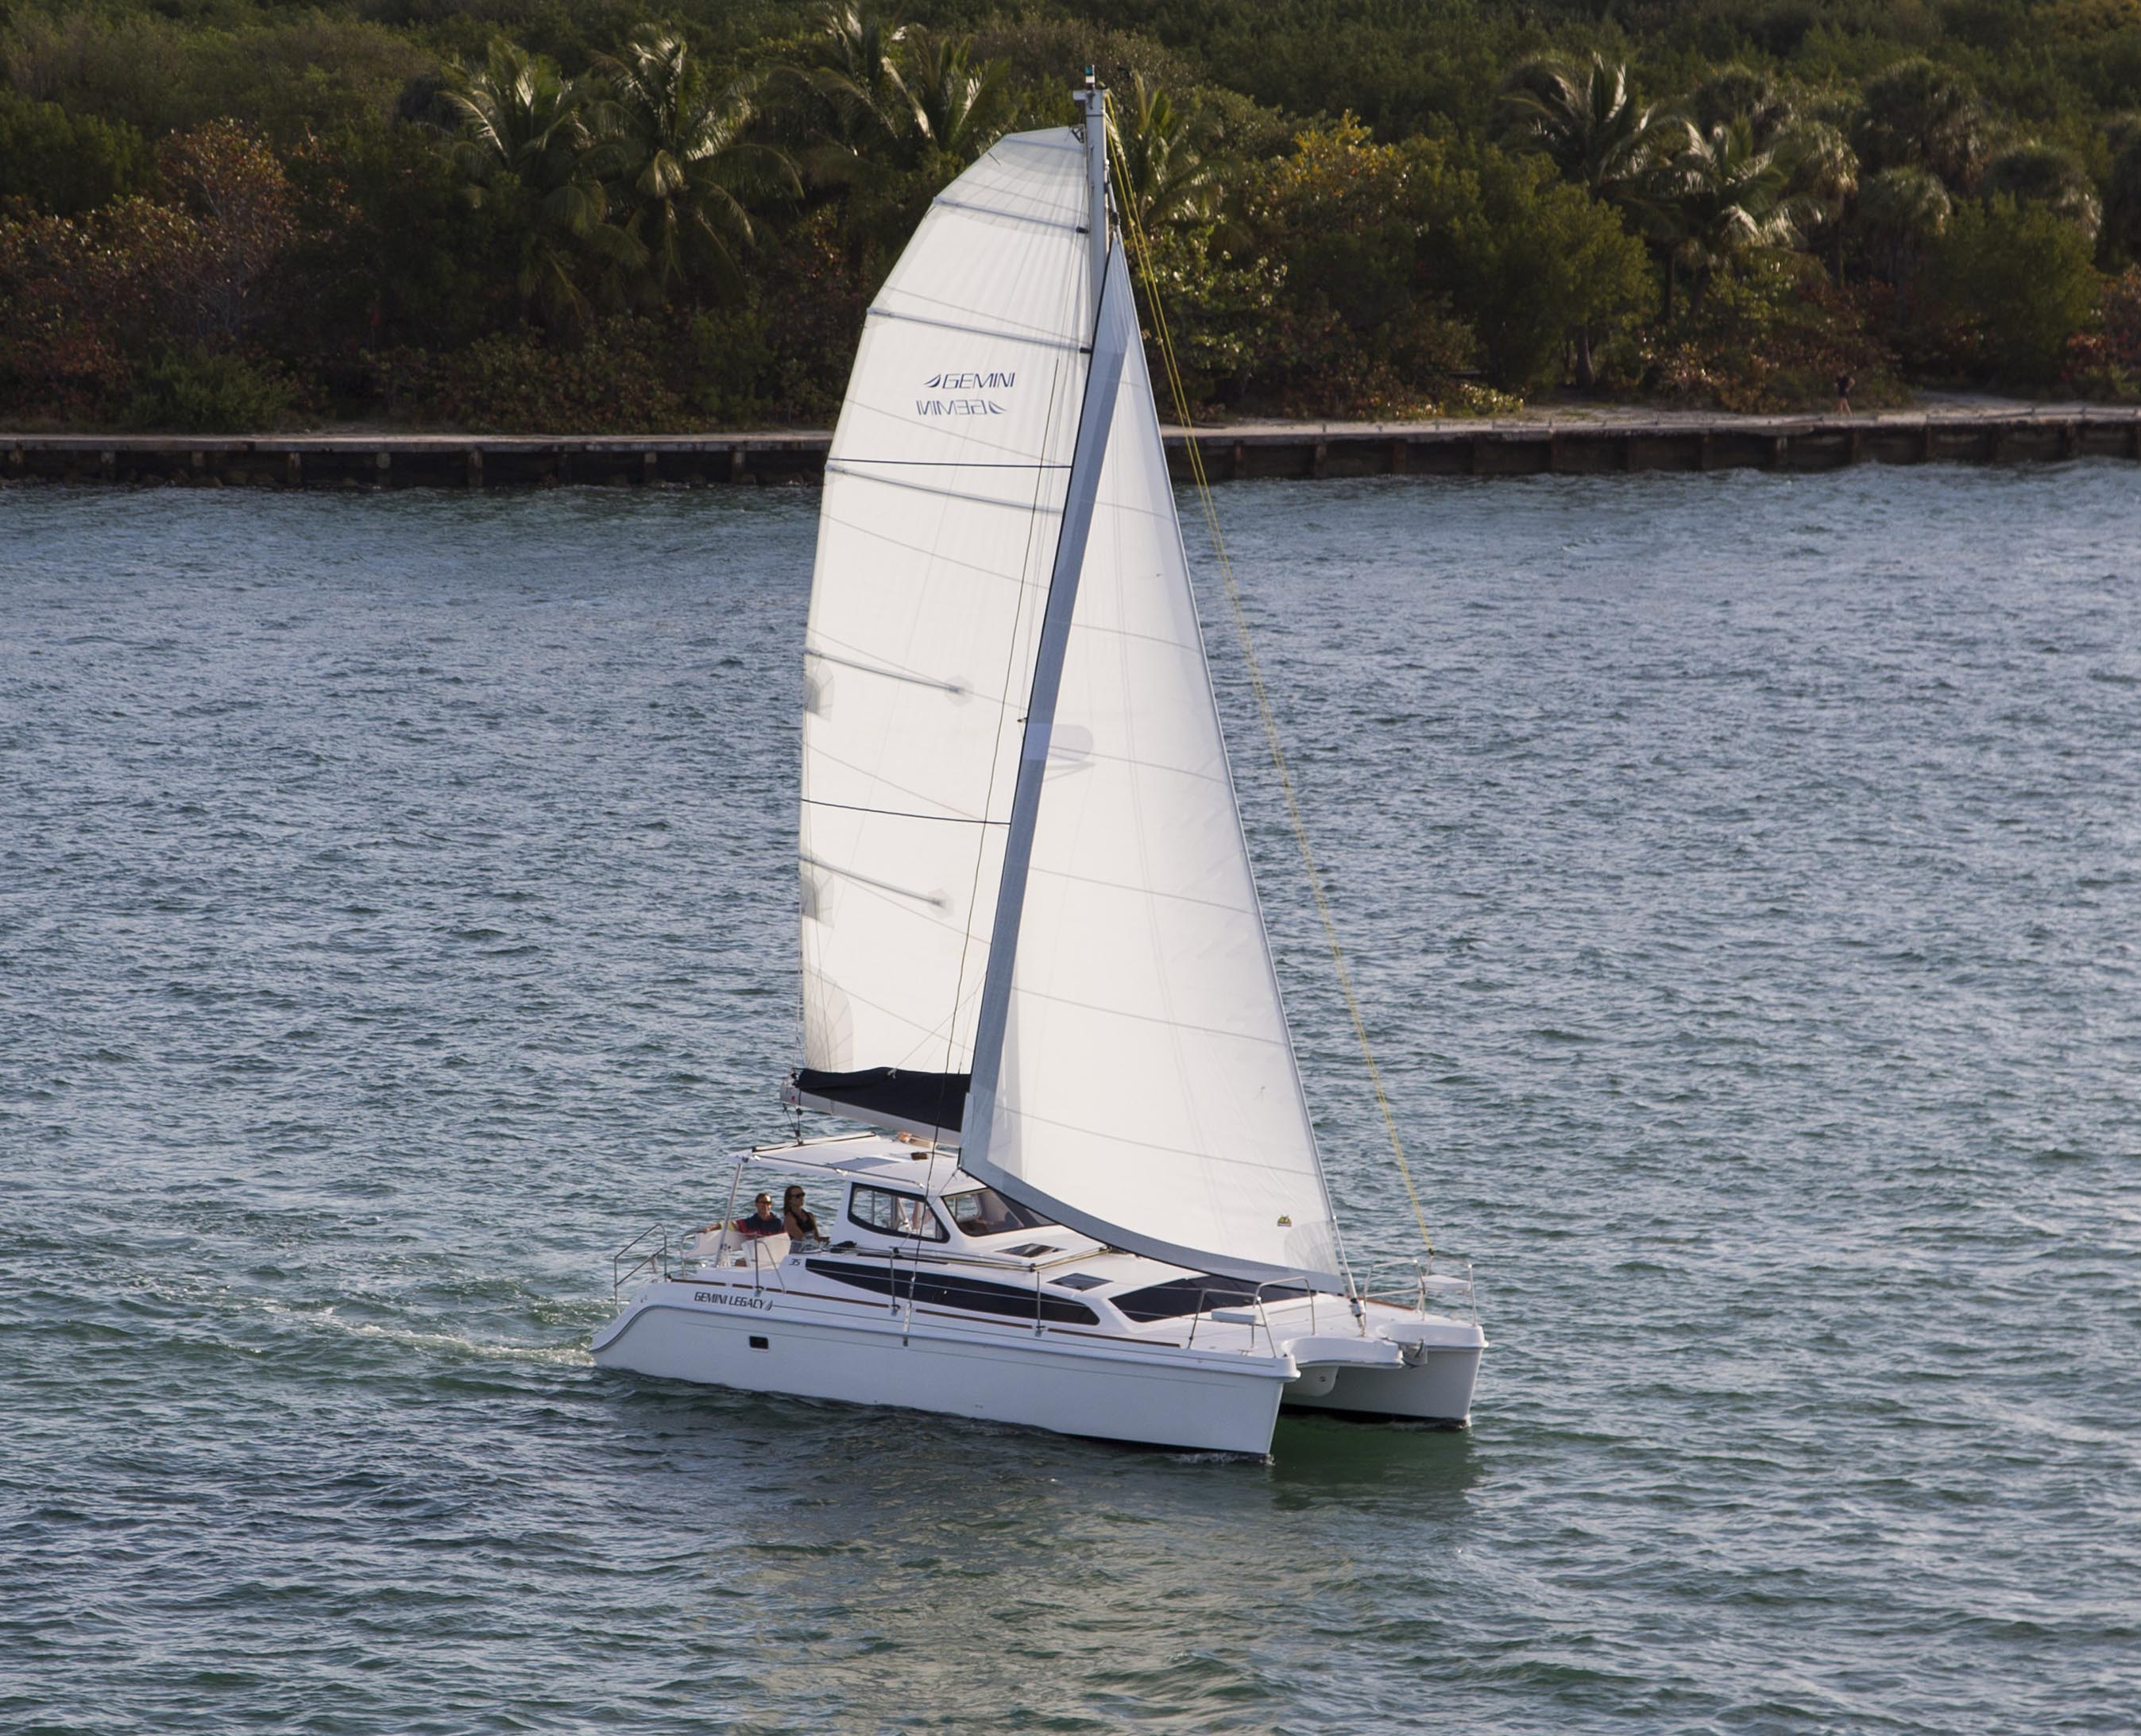 Catamarans HULL 1200, Manufacturer: GEMINI CATAMARANS, Model Year: 2015, Length: 35ft, Model: Legacy 35, Condition: NEW, Listing Status: Catamaran for Sale, Price: USD 299917